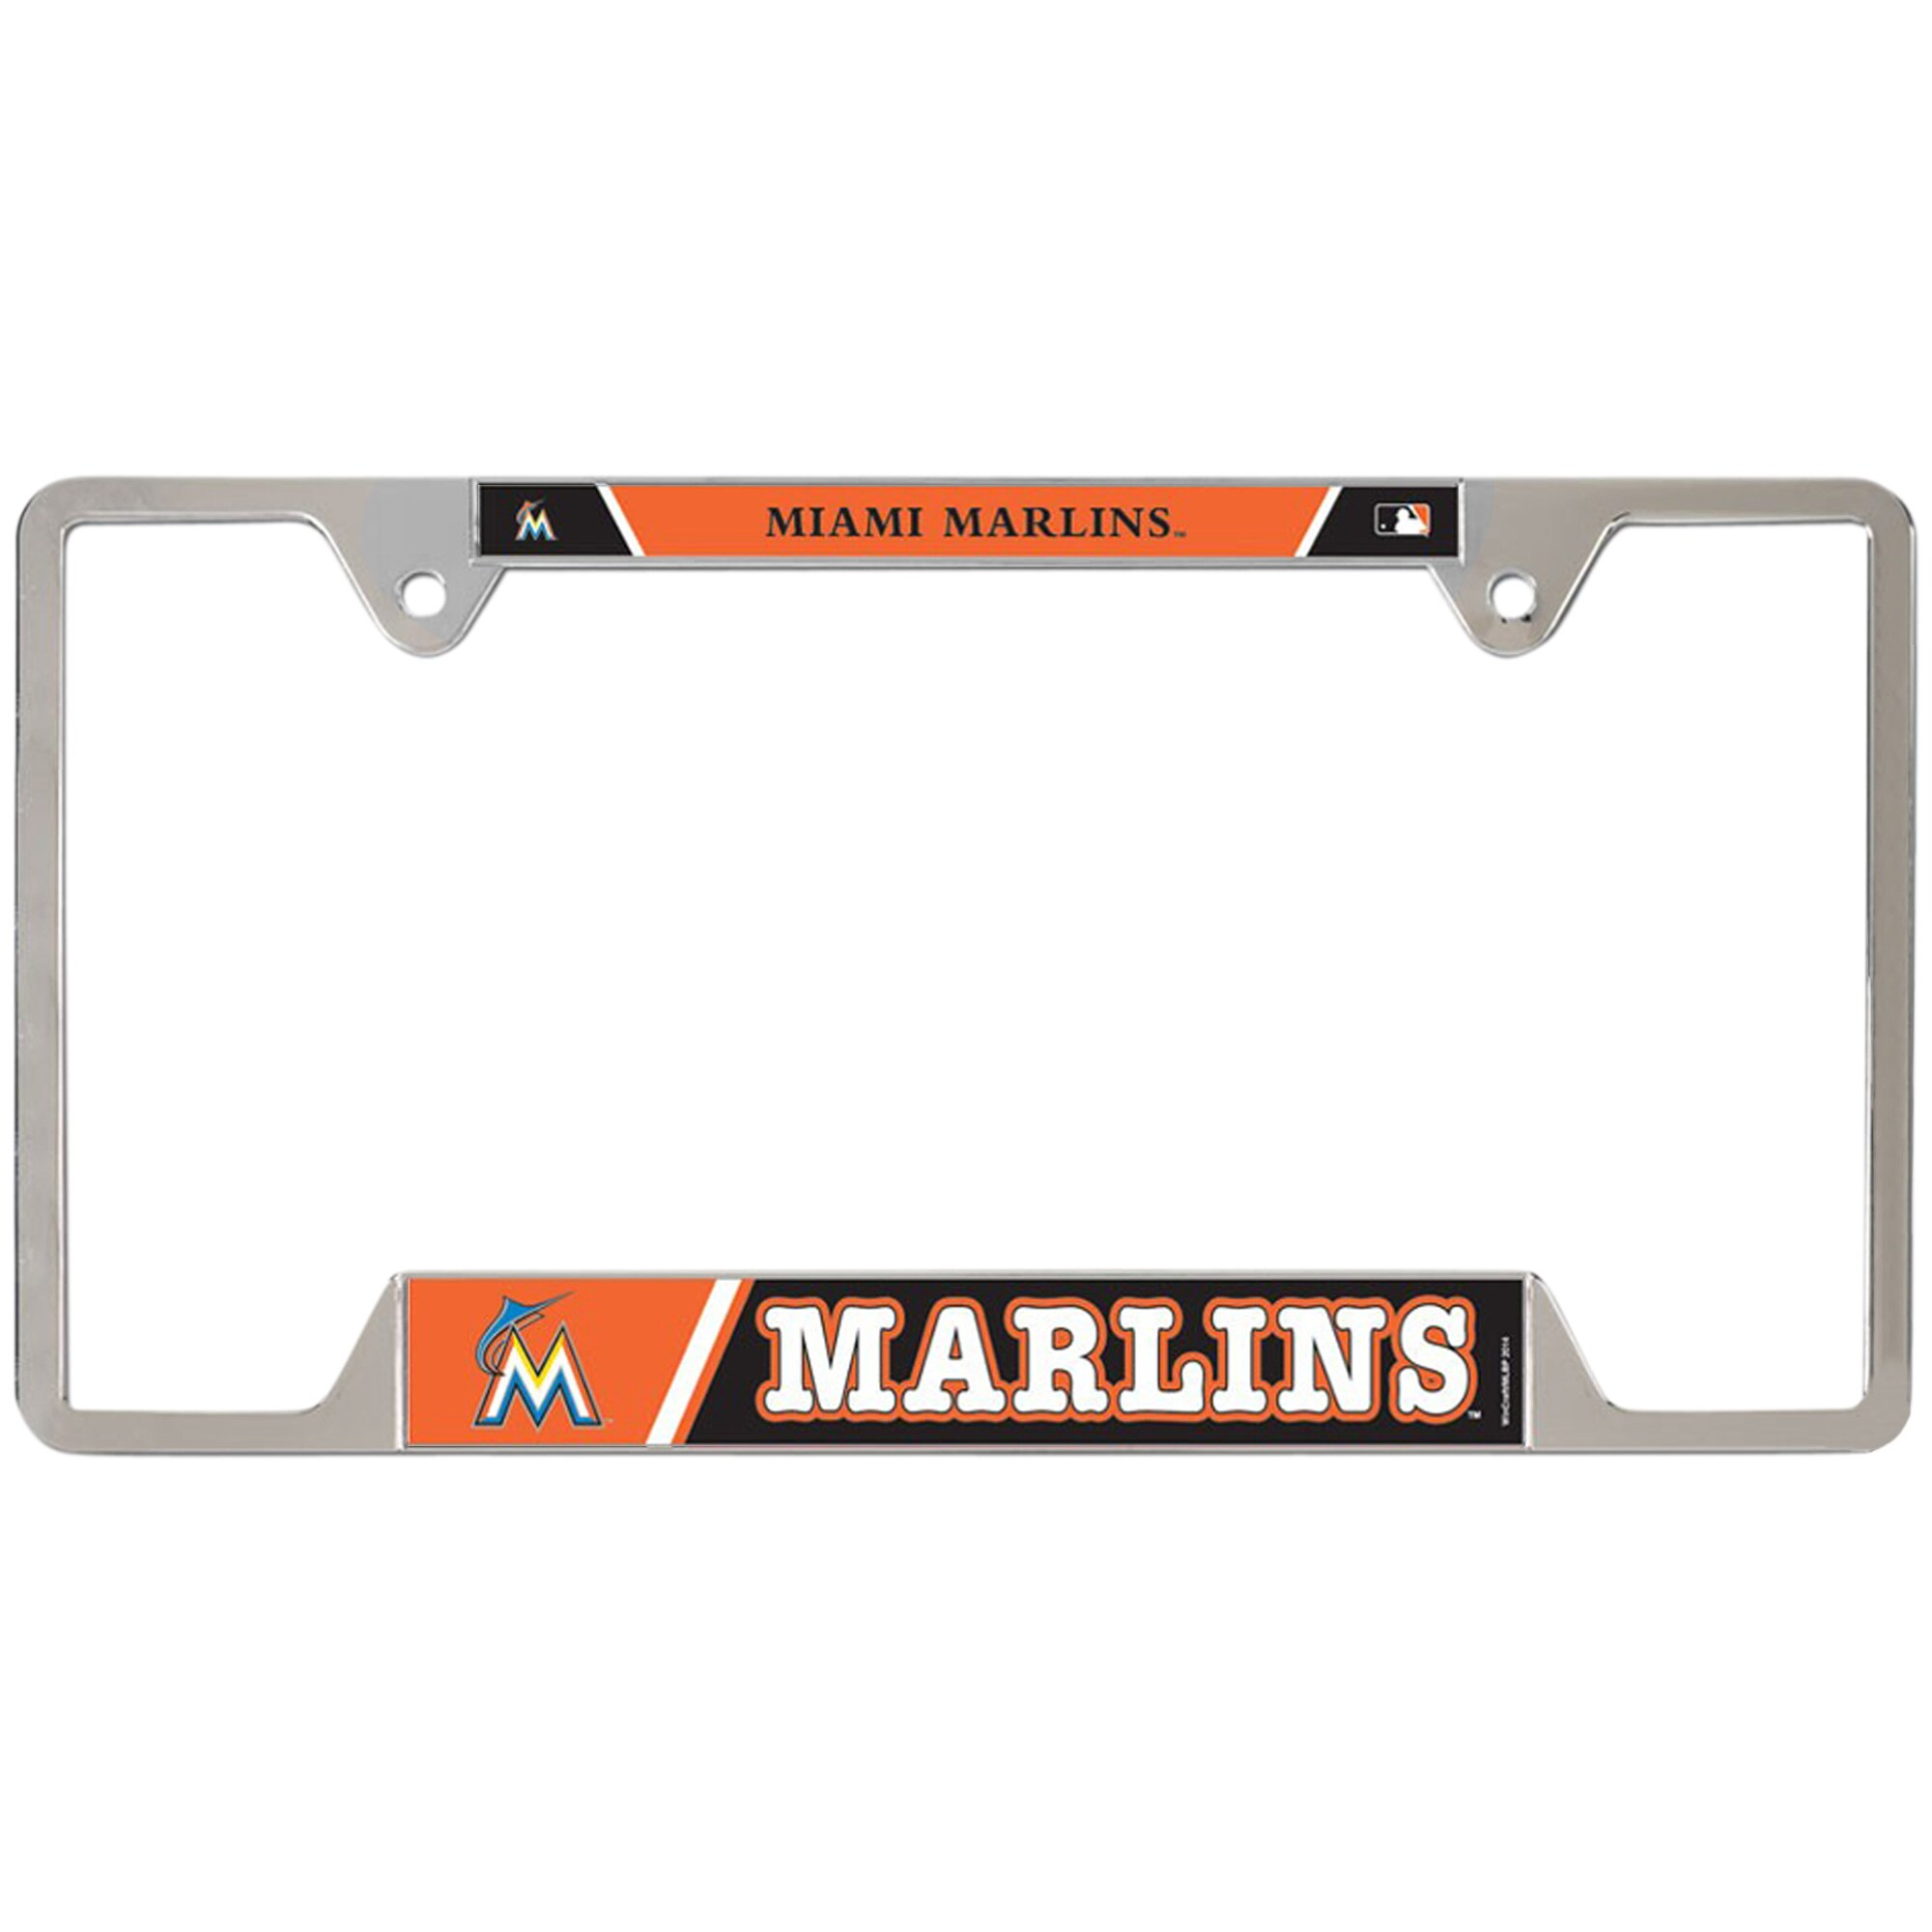 Miami Marlins WinCraft License Plate Frame